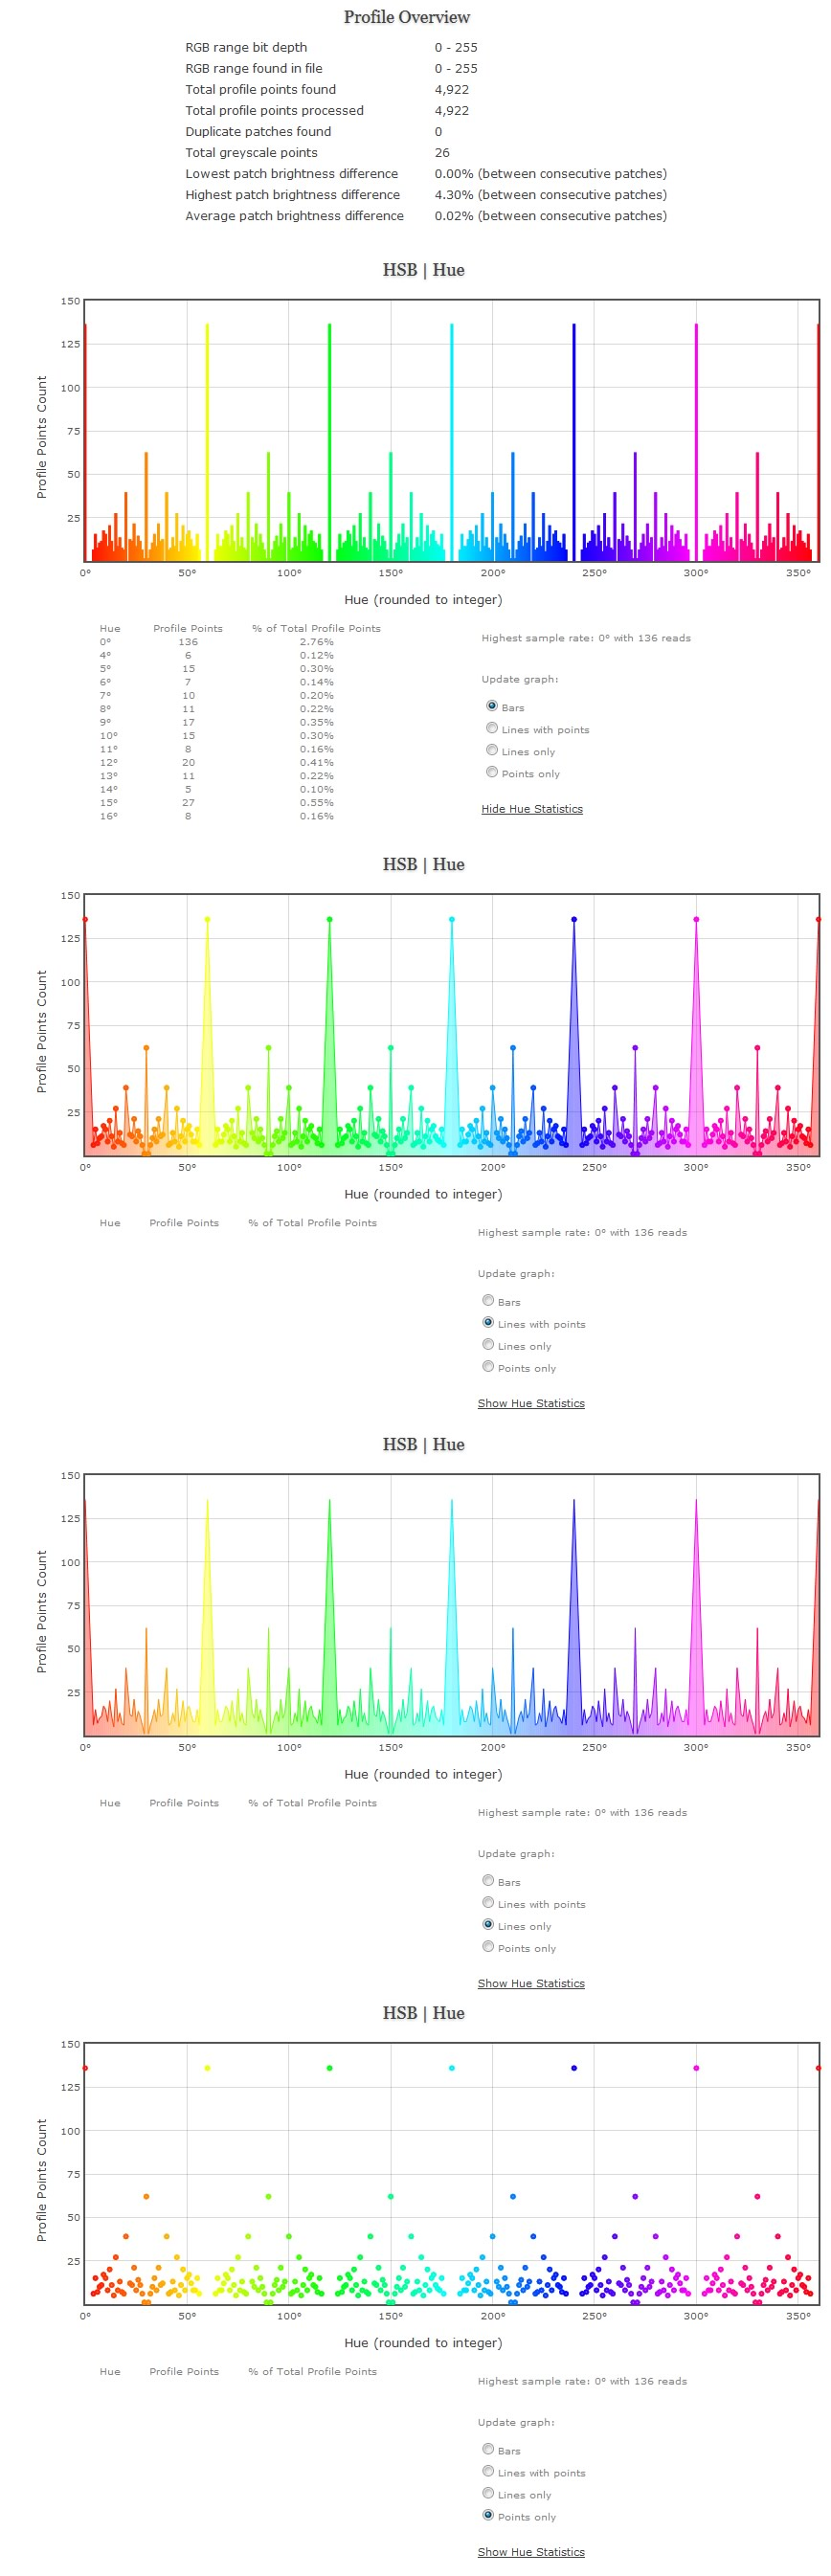 Profile Overview & Hue Statistics Of Custom 17^3 Grid Sequence Patch Set With Custom 26 Point Greyscale